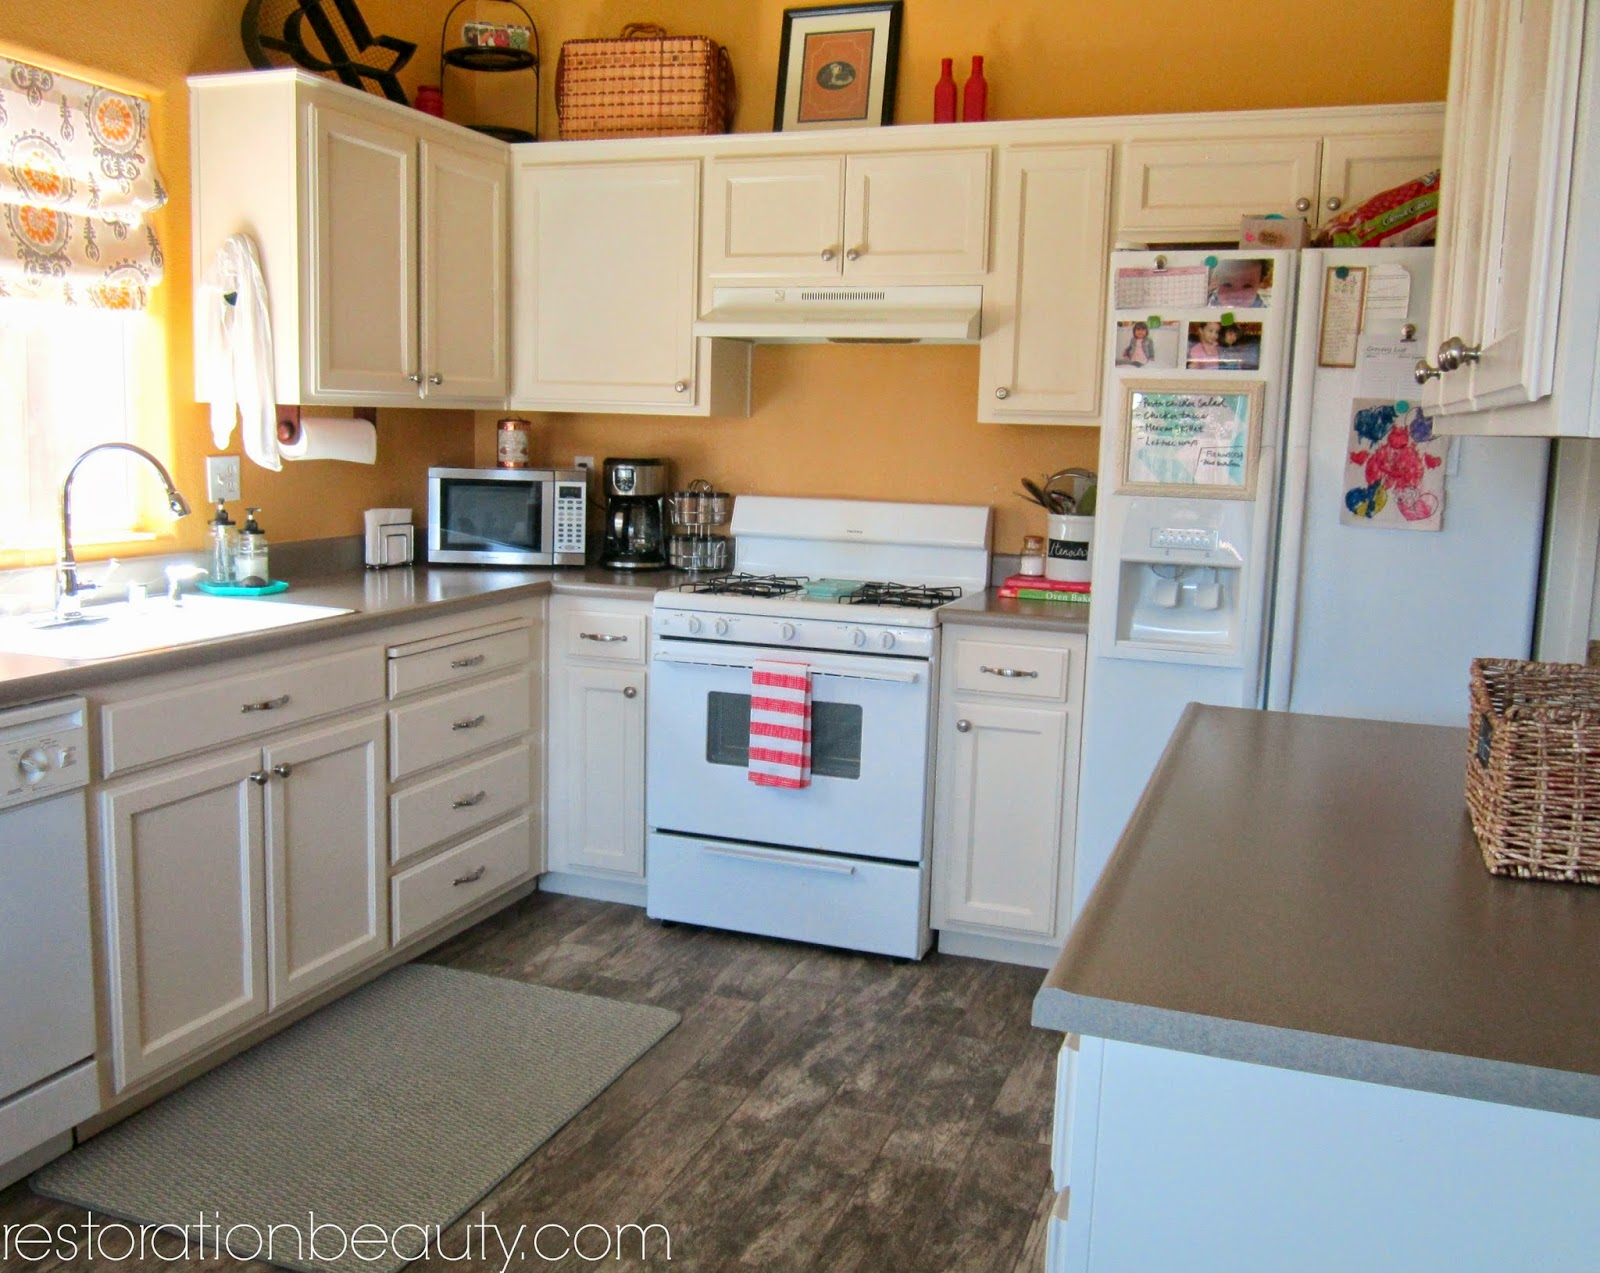 Restoration beauty creating a bright colorful kitchen Bright kitchen